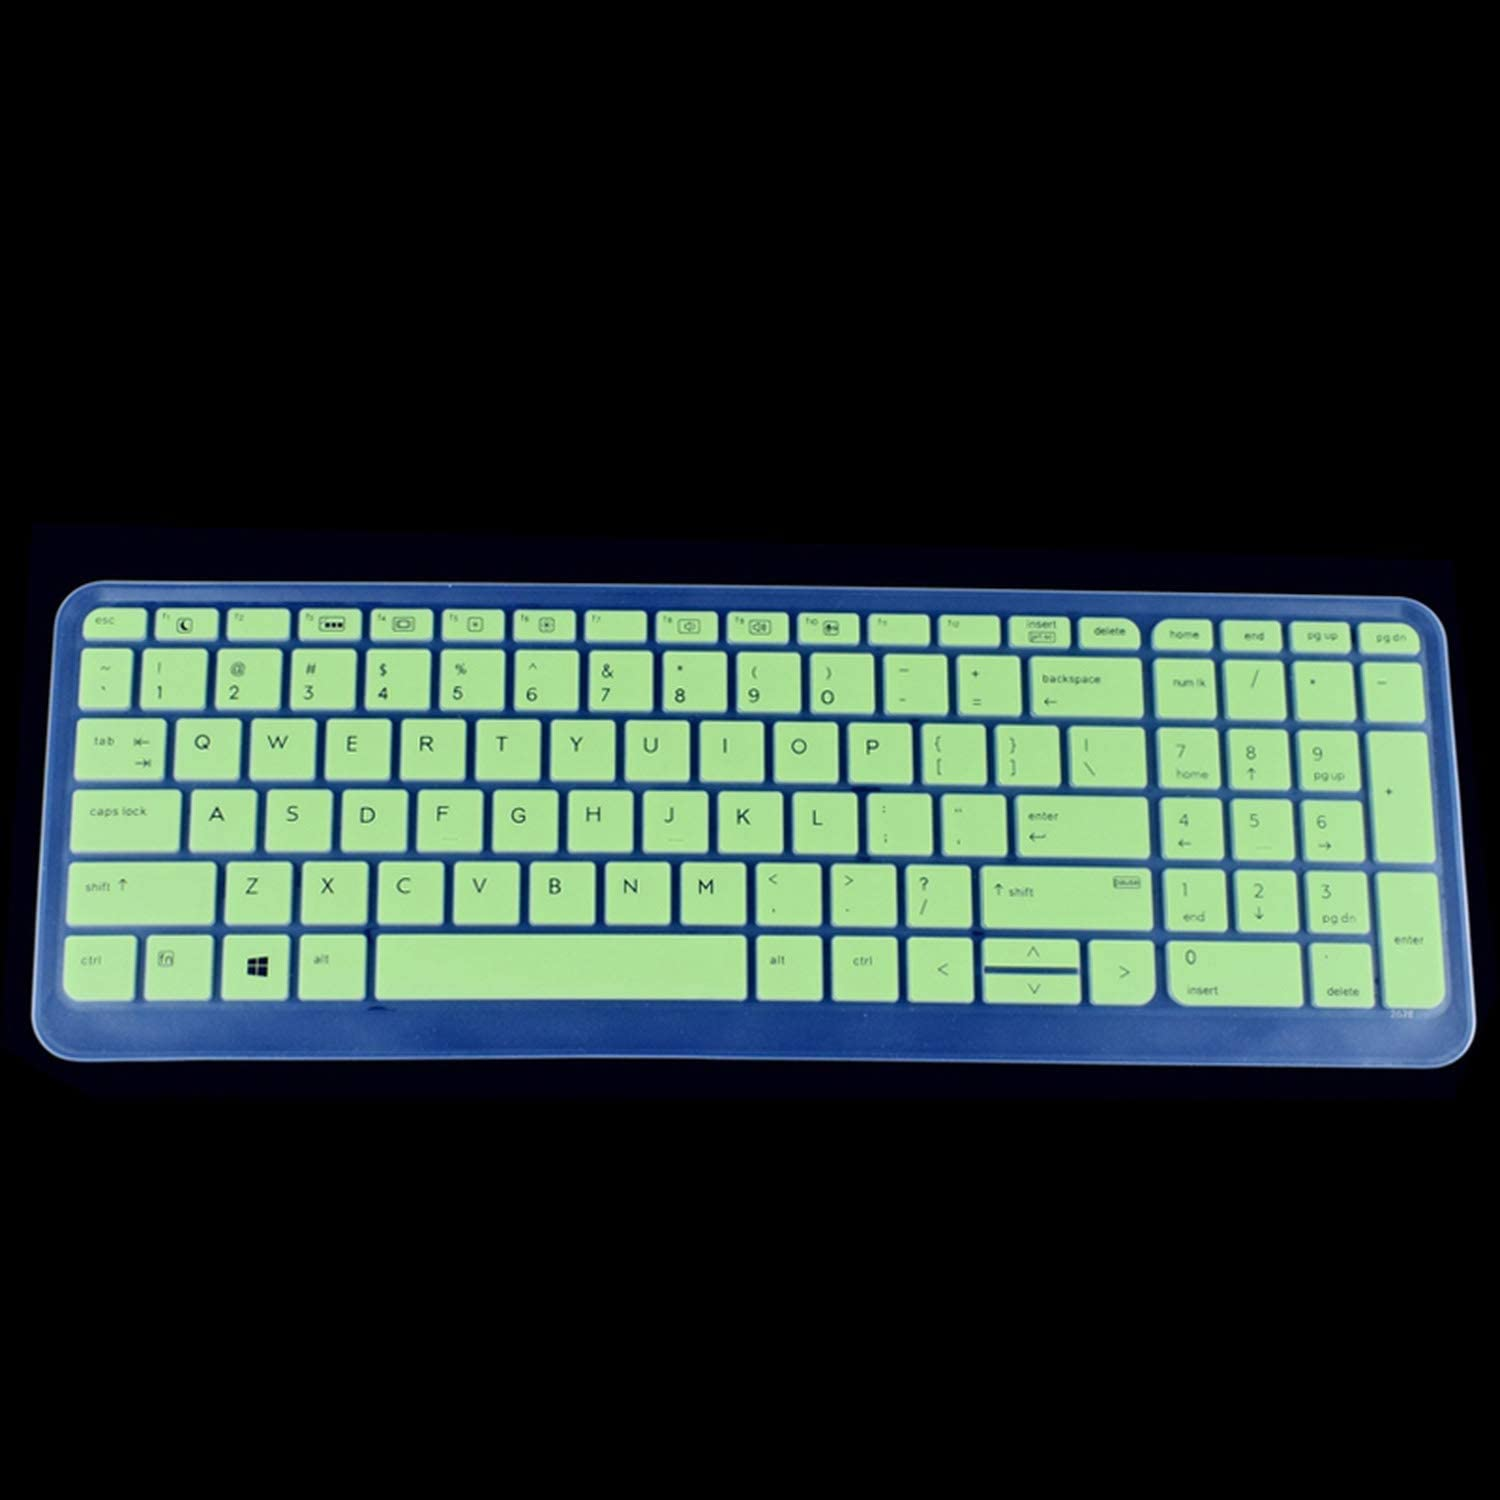 450 G3 G4 G5 455 G3 i5 i7 15.6 inch Silicone Keyboard Cover Protector-Green for HP PROBOOK 650 G2 G3 G4